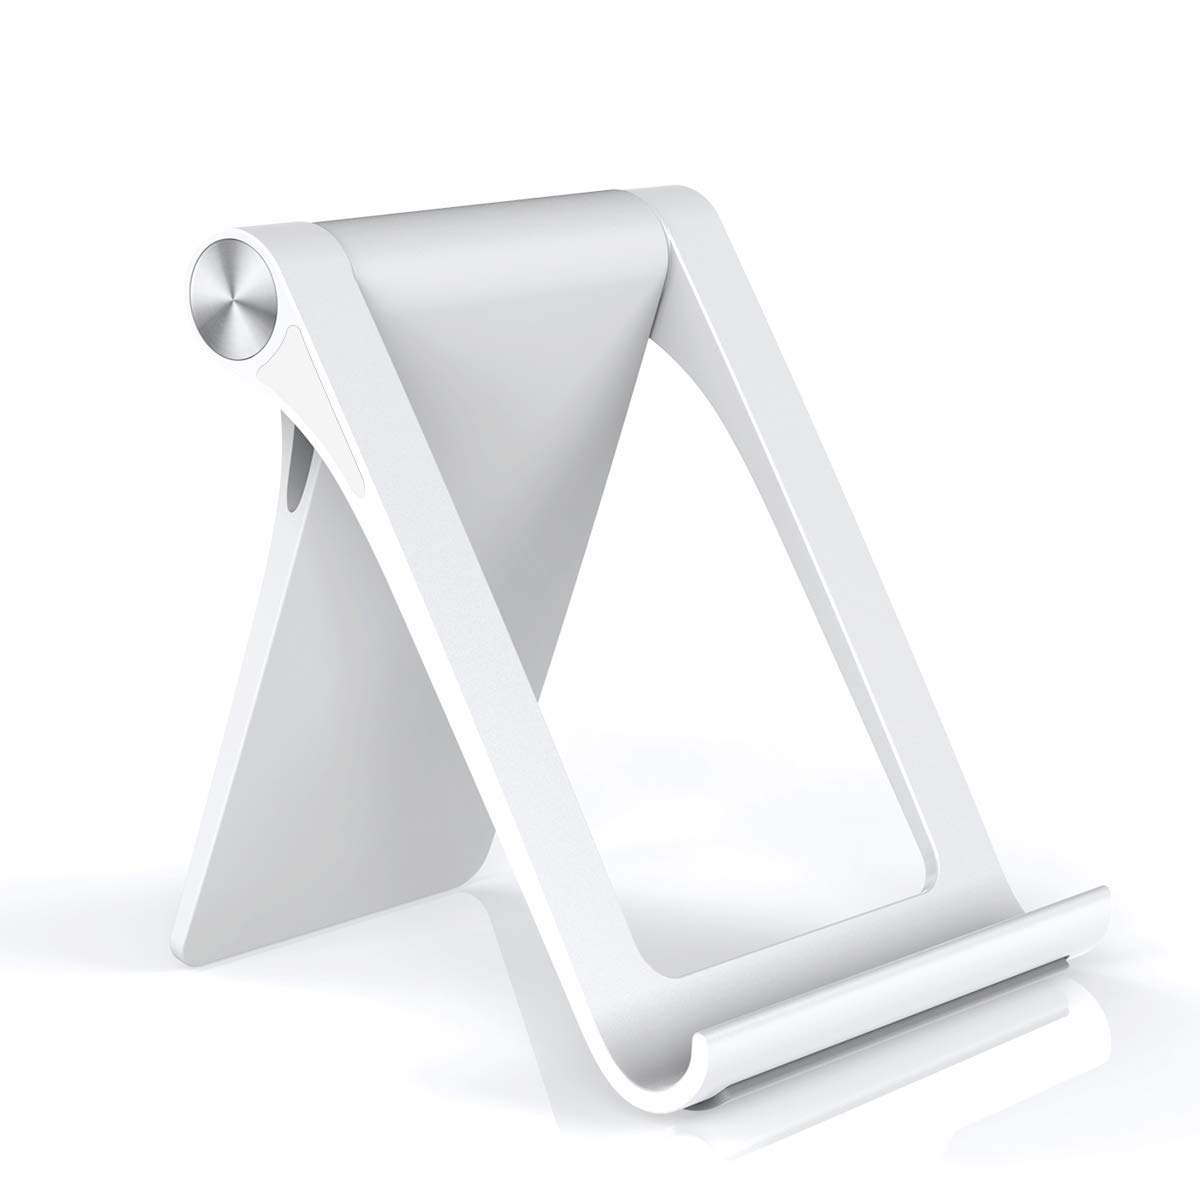 licheers Universal Phone Holder Cell Phone Stand Multi-Angle Office Compatible with Phone XS//XR//8//8 Plus//7//7 Plus Kindle,Suit for Home Galaxy S8//S7//Note 8 Kitchen,Desktop,Nightstand. White